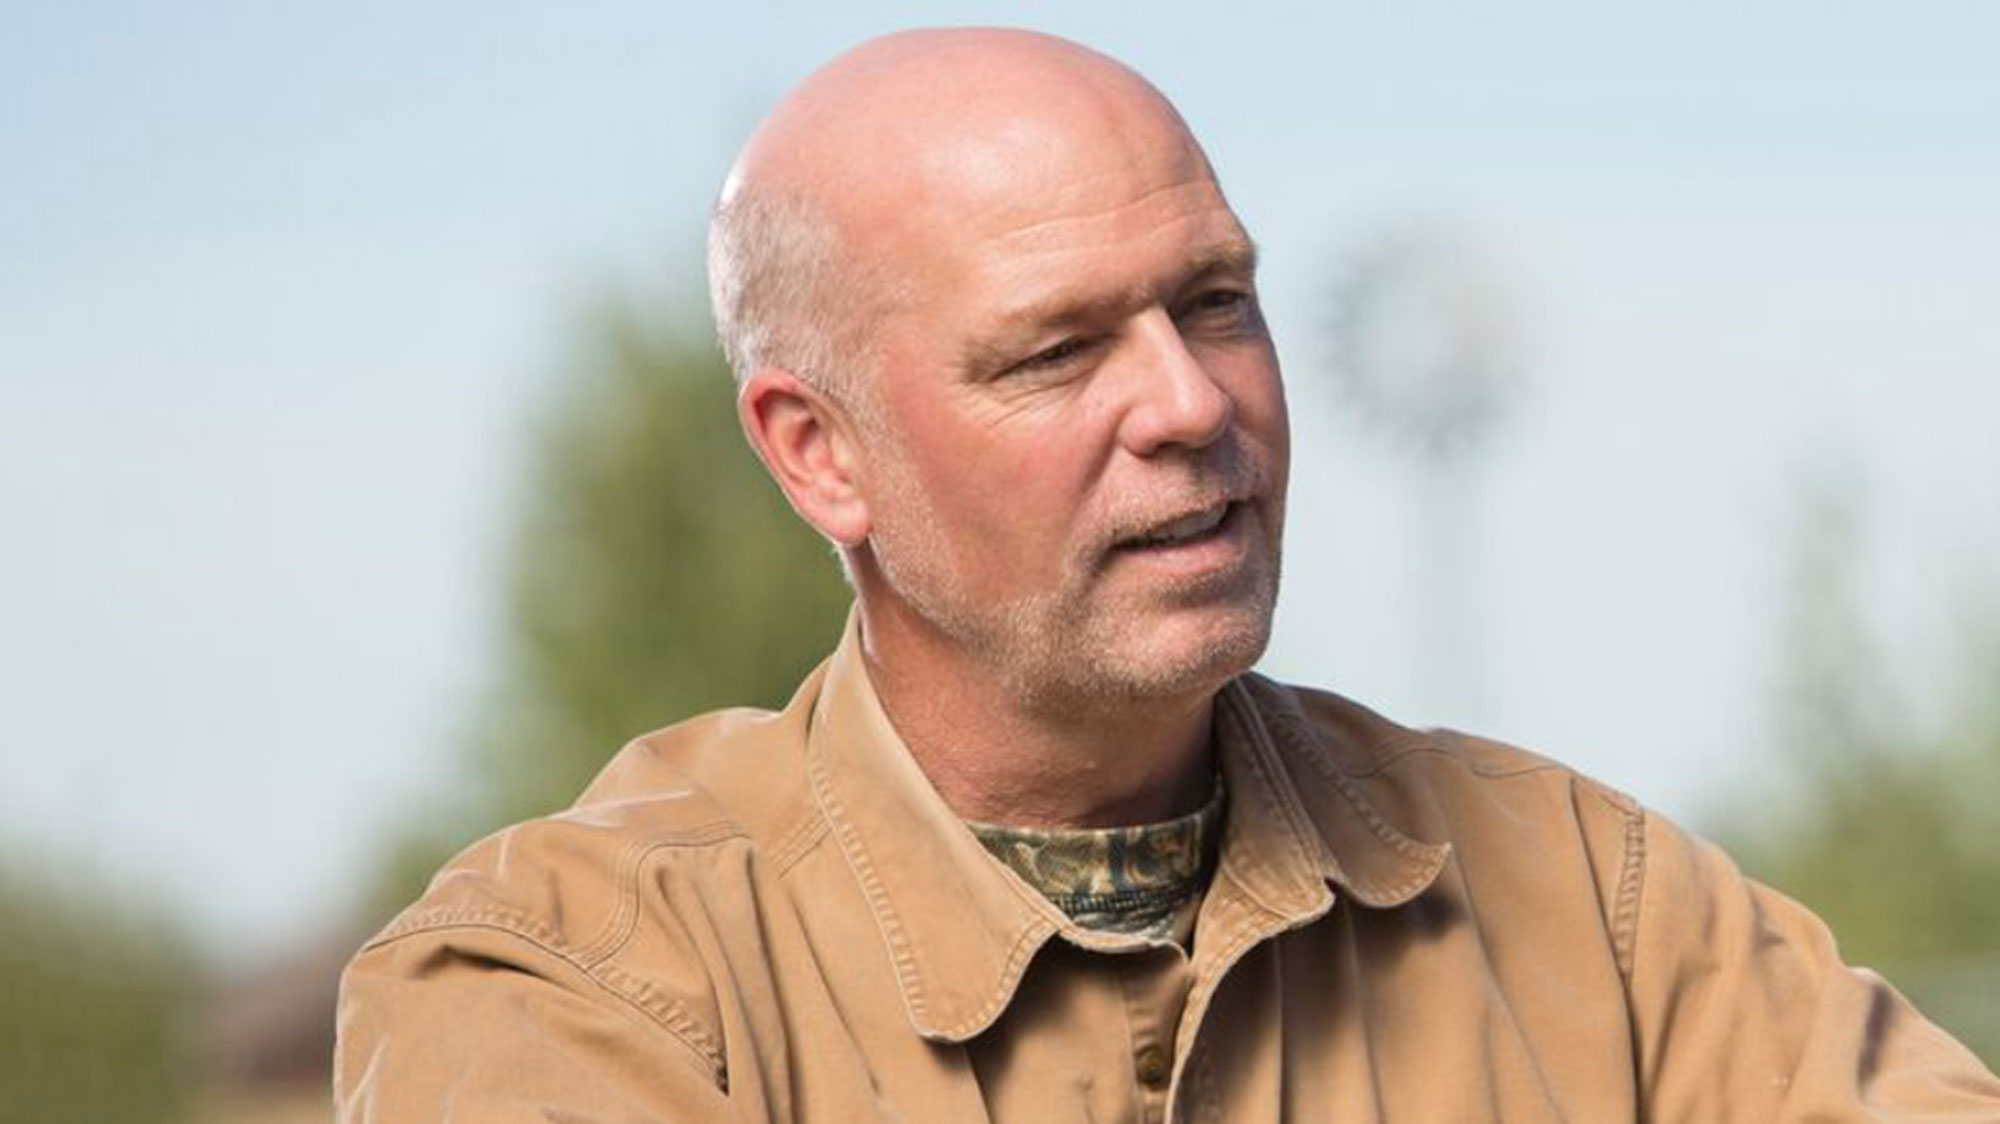 """Montana Republican Candidate Allegedly """"Bodyslammed"""" Guardian Reporter on Eve of Election"""